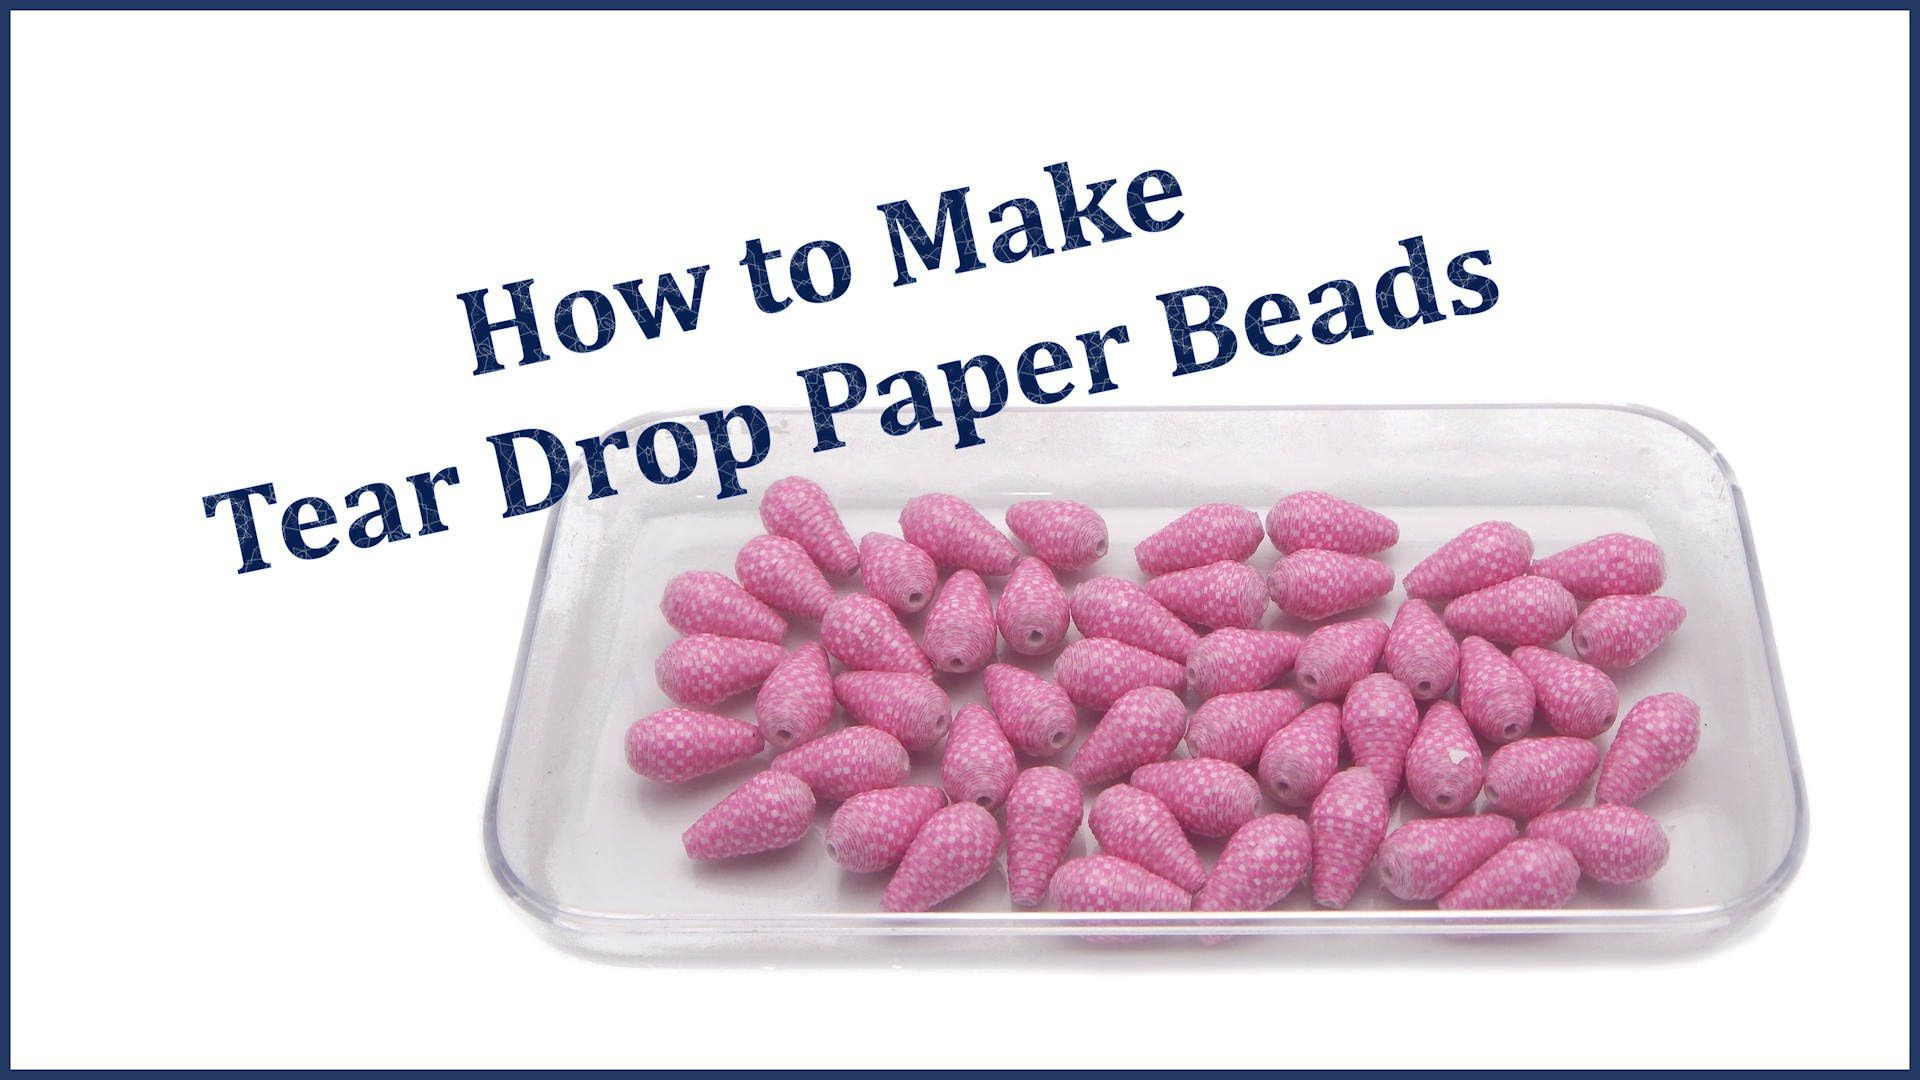 How to Make Tear Drop Paper Beads